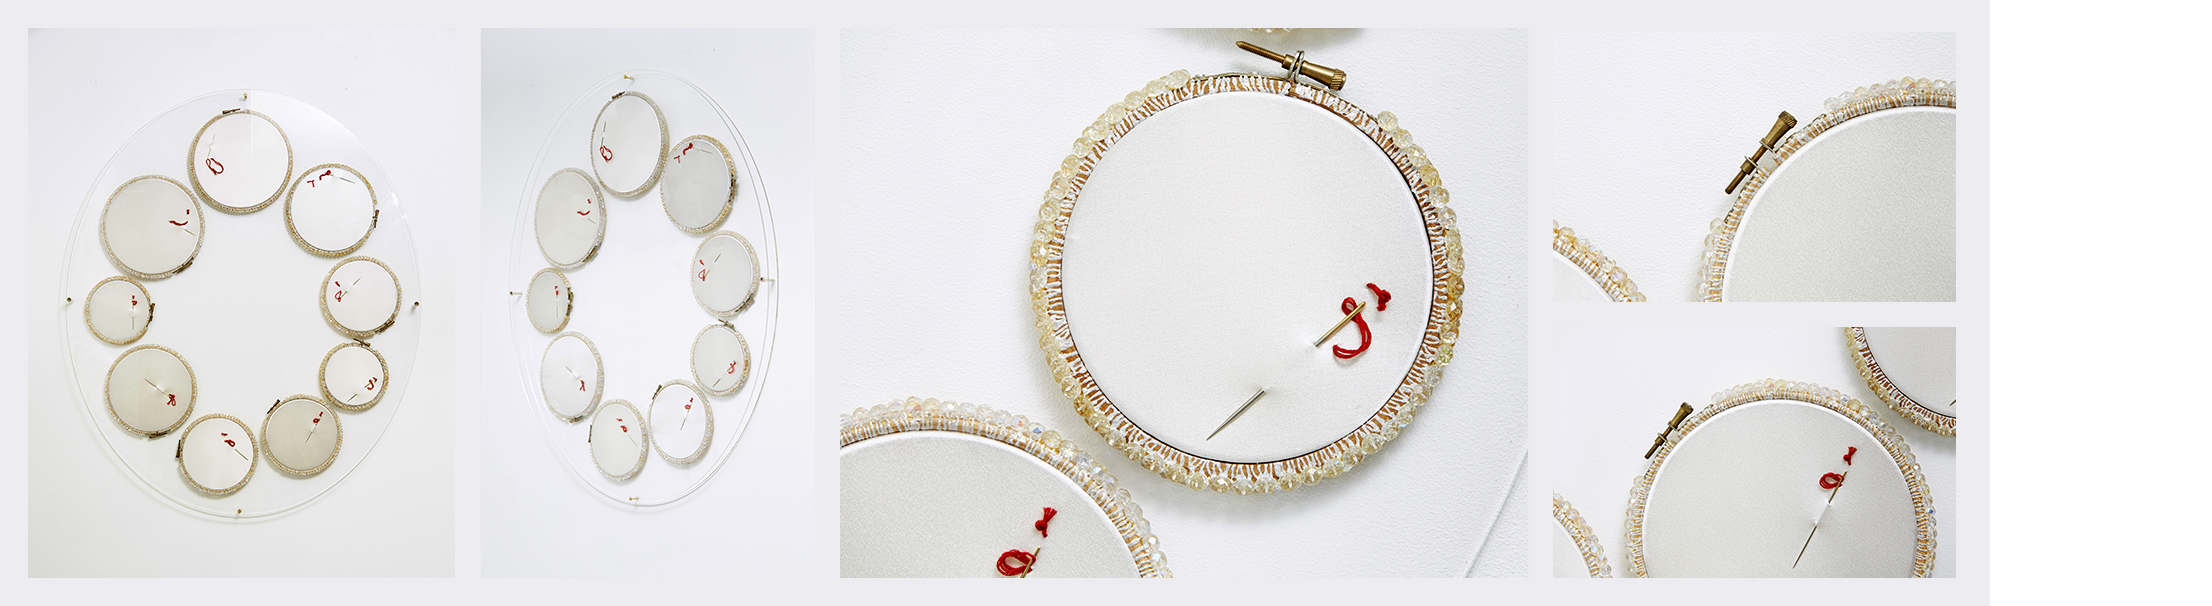 Hymeneal  (2005)   (92cm (l) x 77cm (w))   Embroidery rings  /  Swarvorski  crystals  /  silk  /  needles  /  embroidery thread  /  perspex.